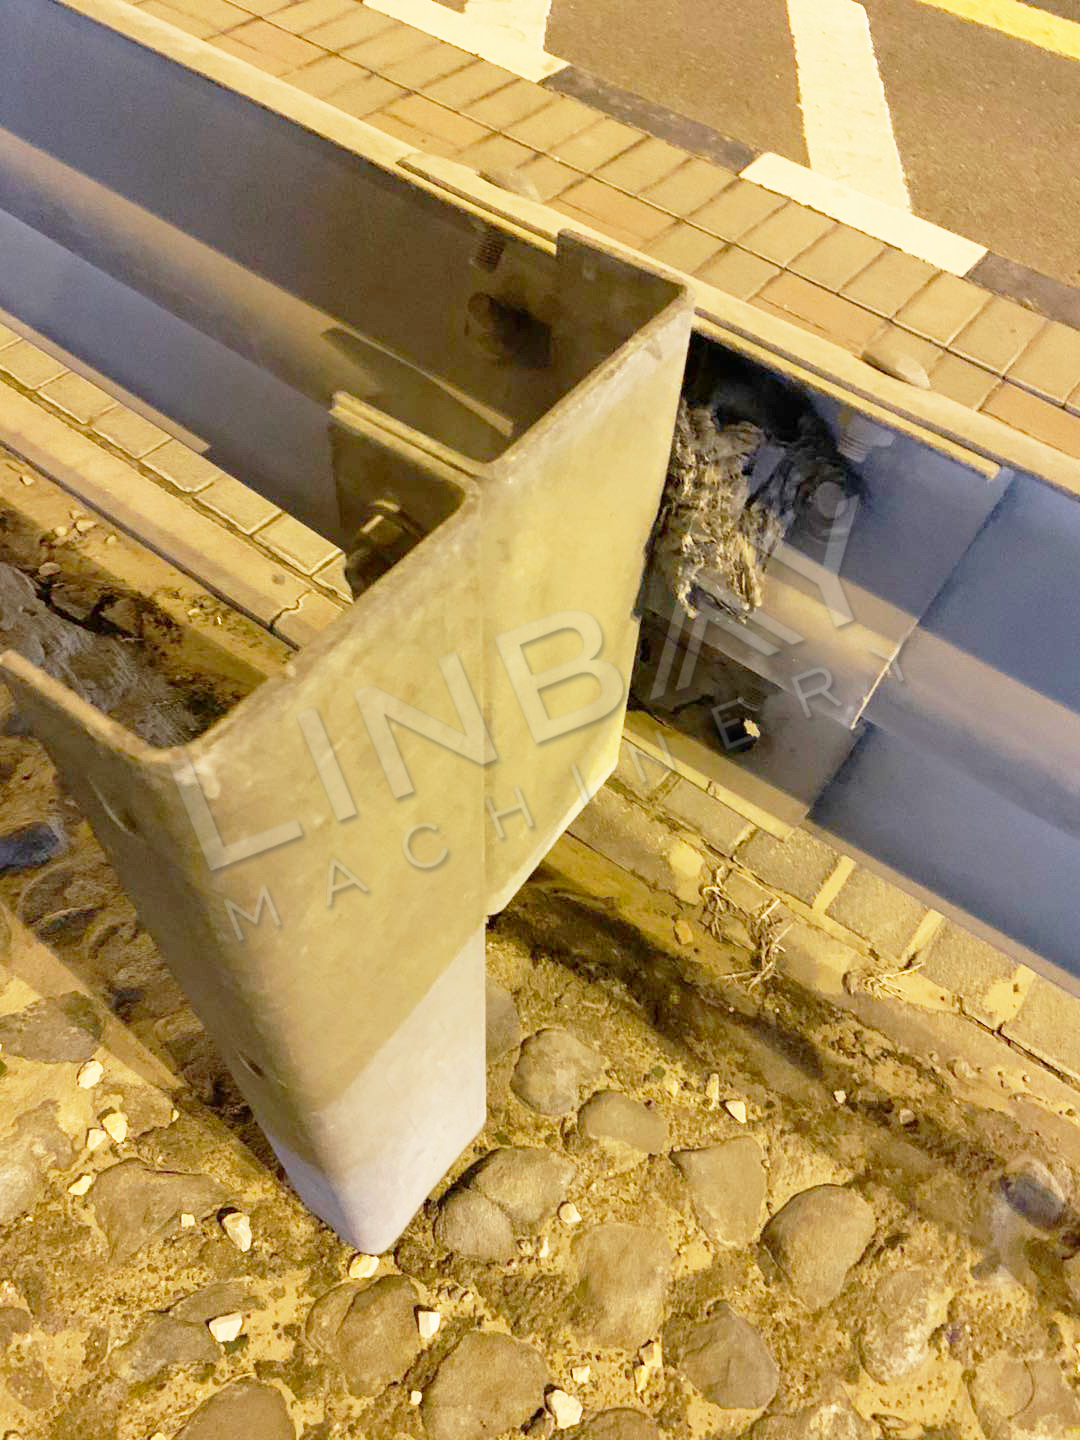 Saudi Arabia guardrail spacer block and post (2)